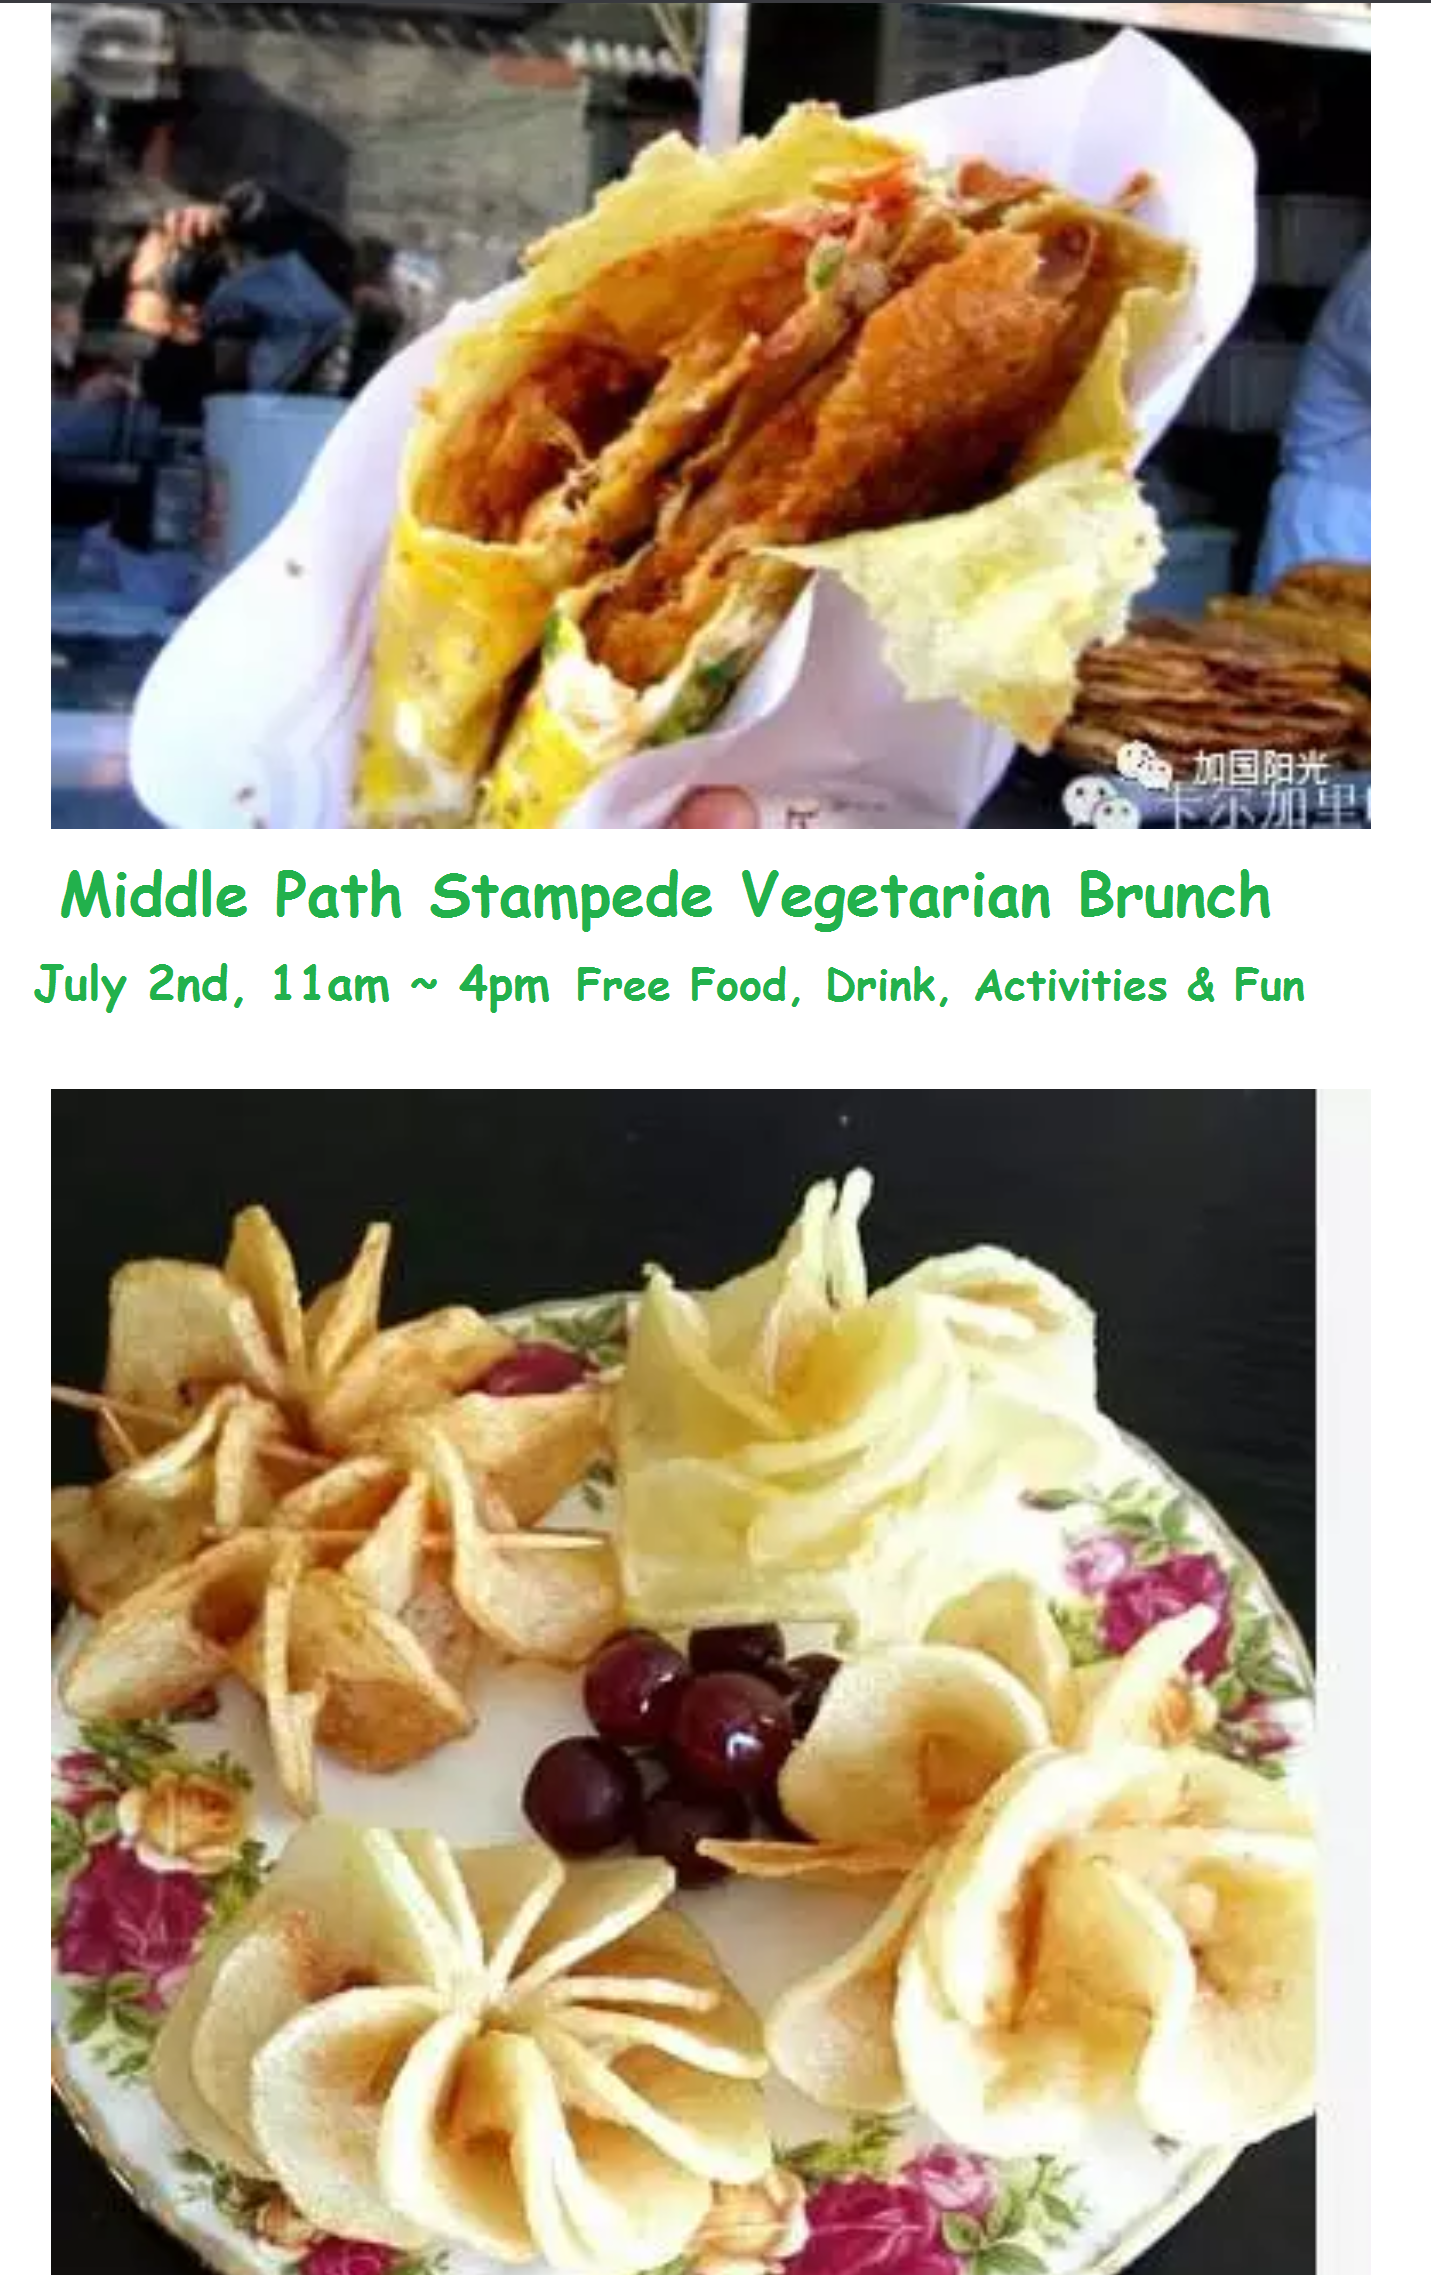 Calgary Middle Path Stampede Vegetarian Brunch 2017